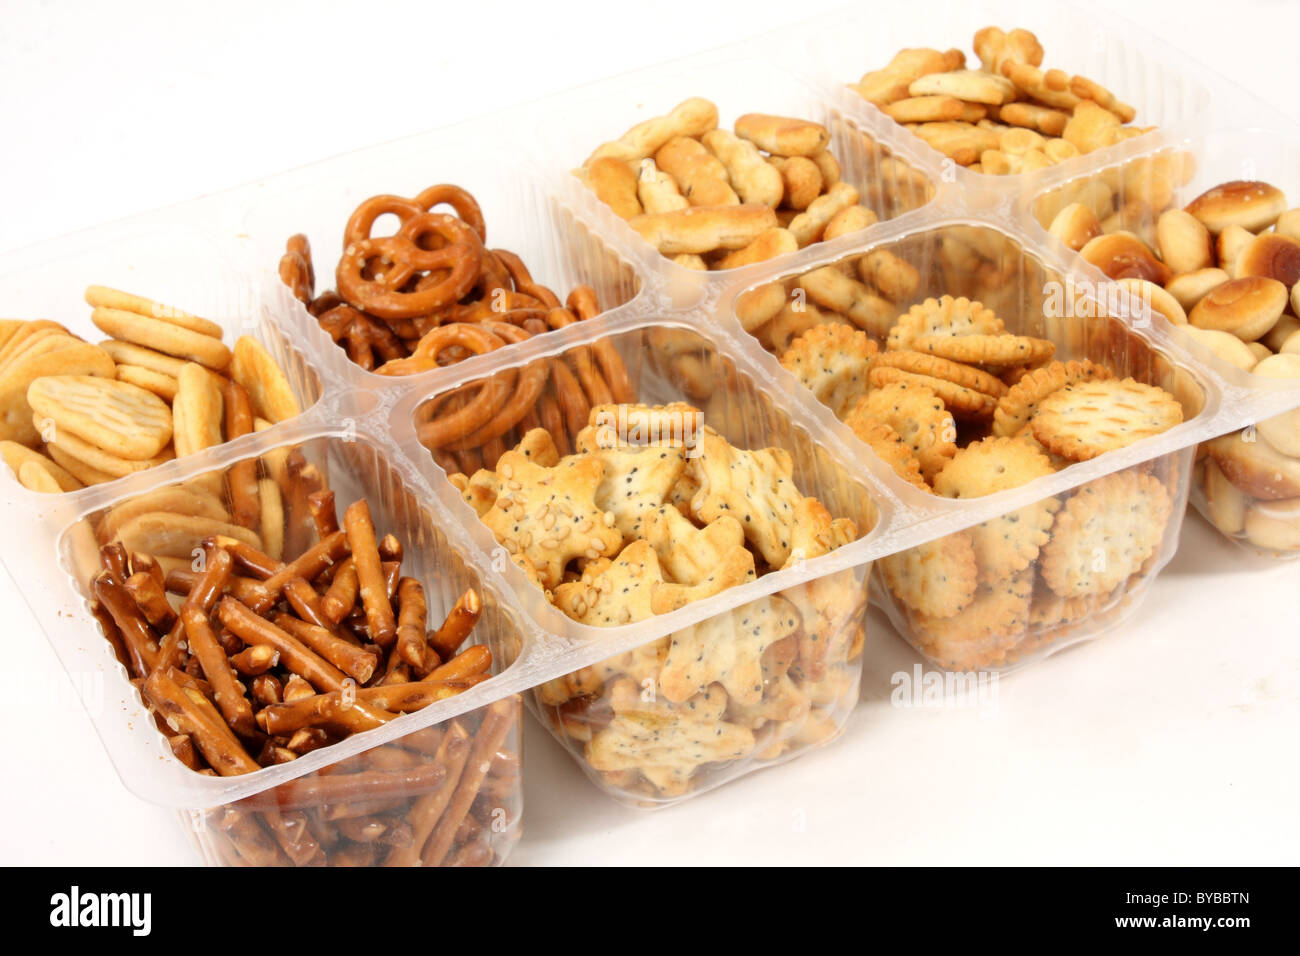 savoury snacks and pretzels food perfect for parties as party food stock photo 34056869 alamy. Black Bedroom Furniture Sets. Home Design Ideas